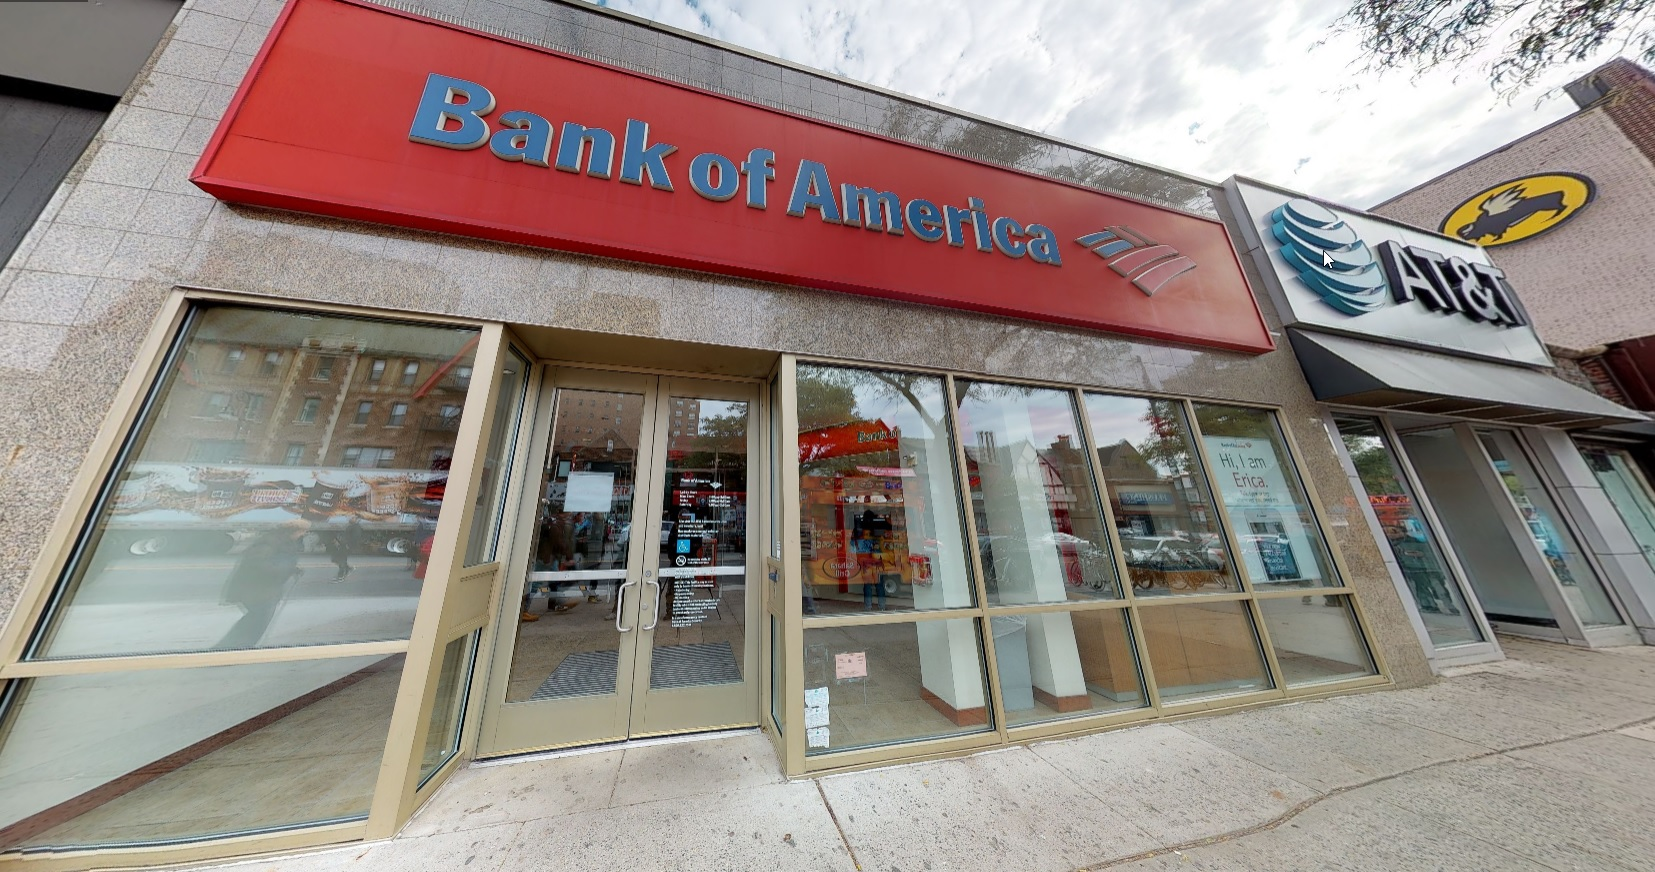 Bank of America financial center with walk-up ATM | 10726 Continental Ave, Forest Hills, NY 11375